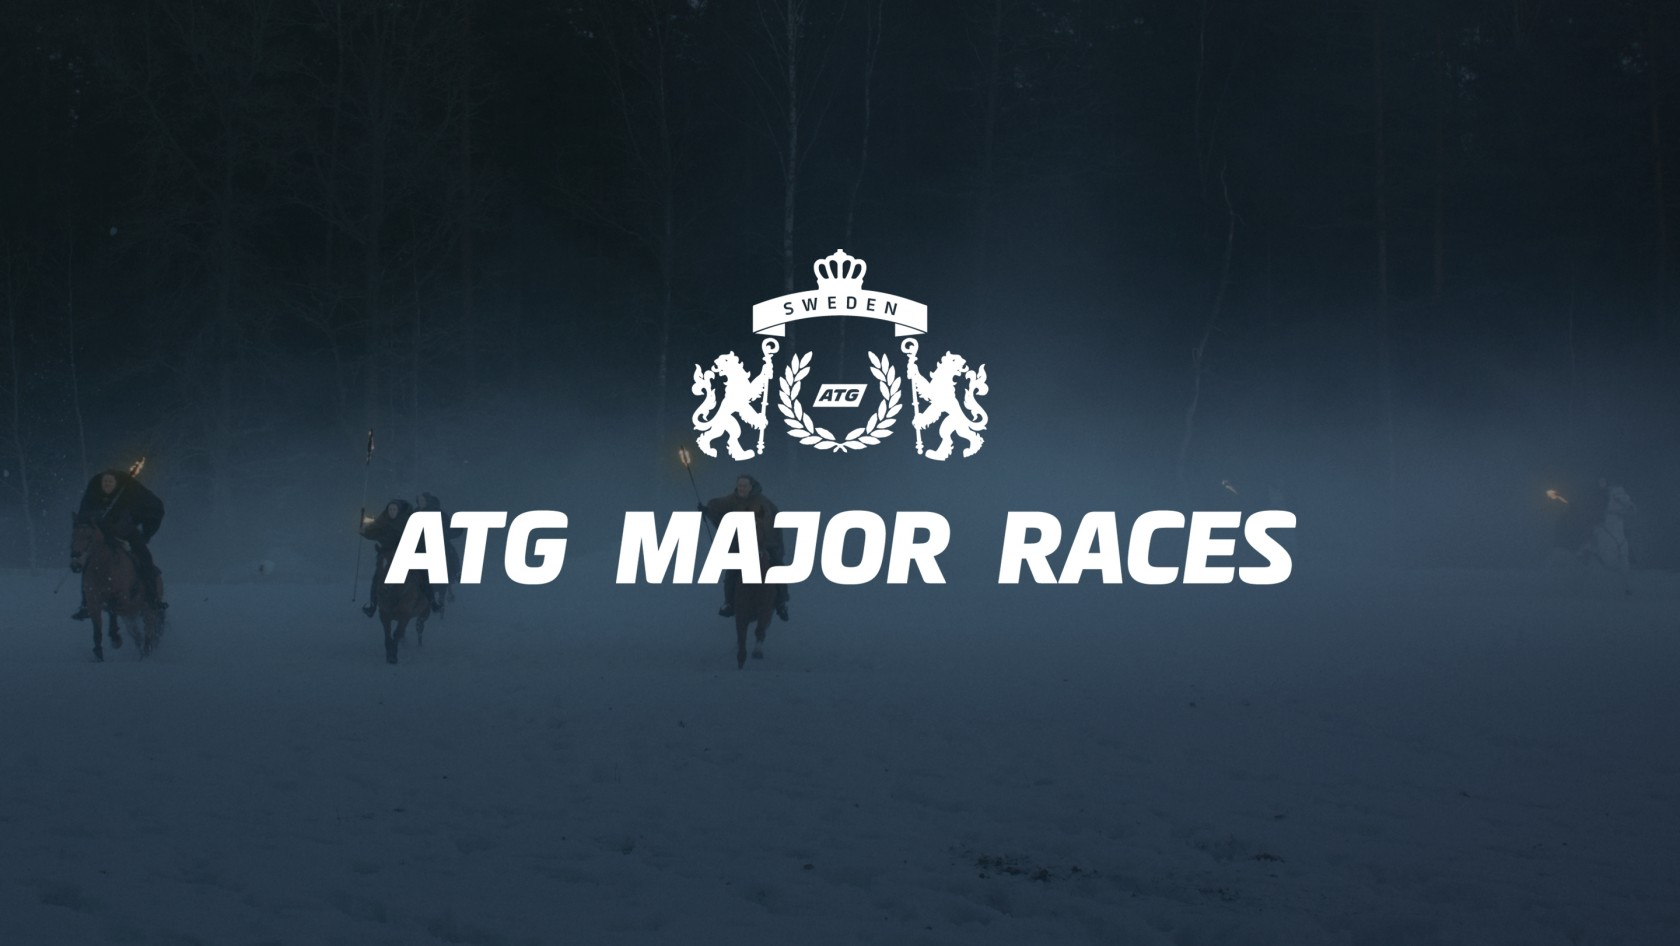 ATG Major Races, en kampanj från Phosworks